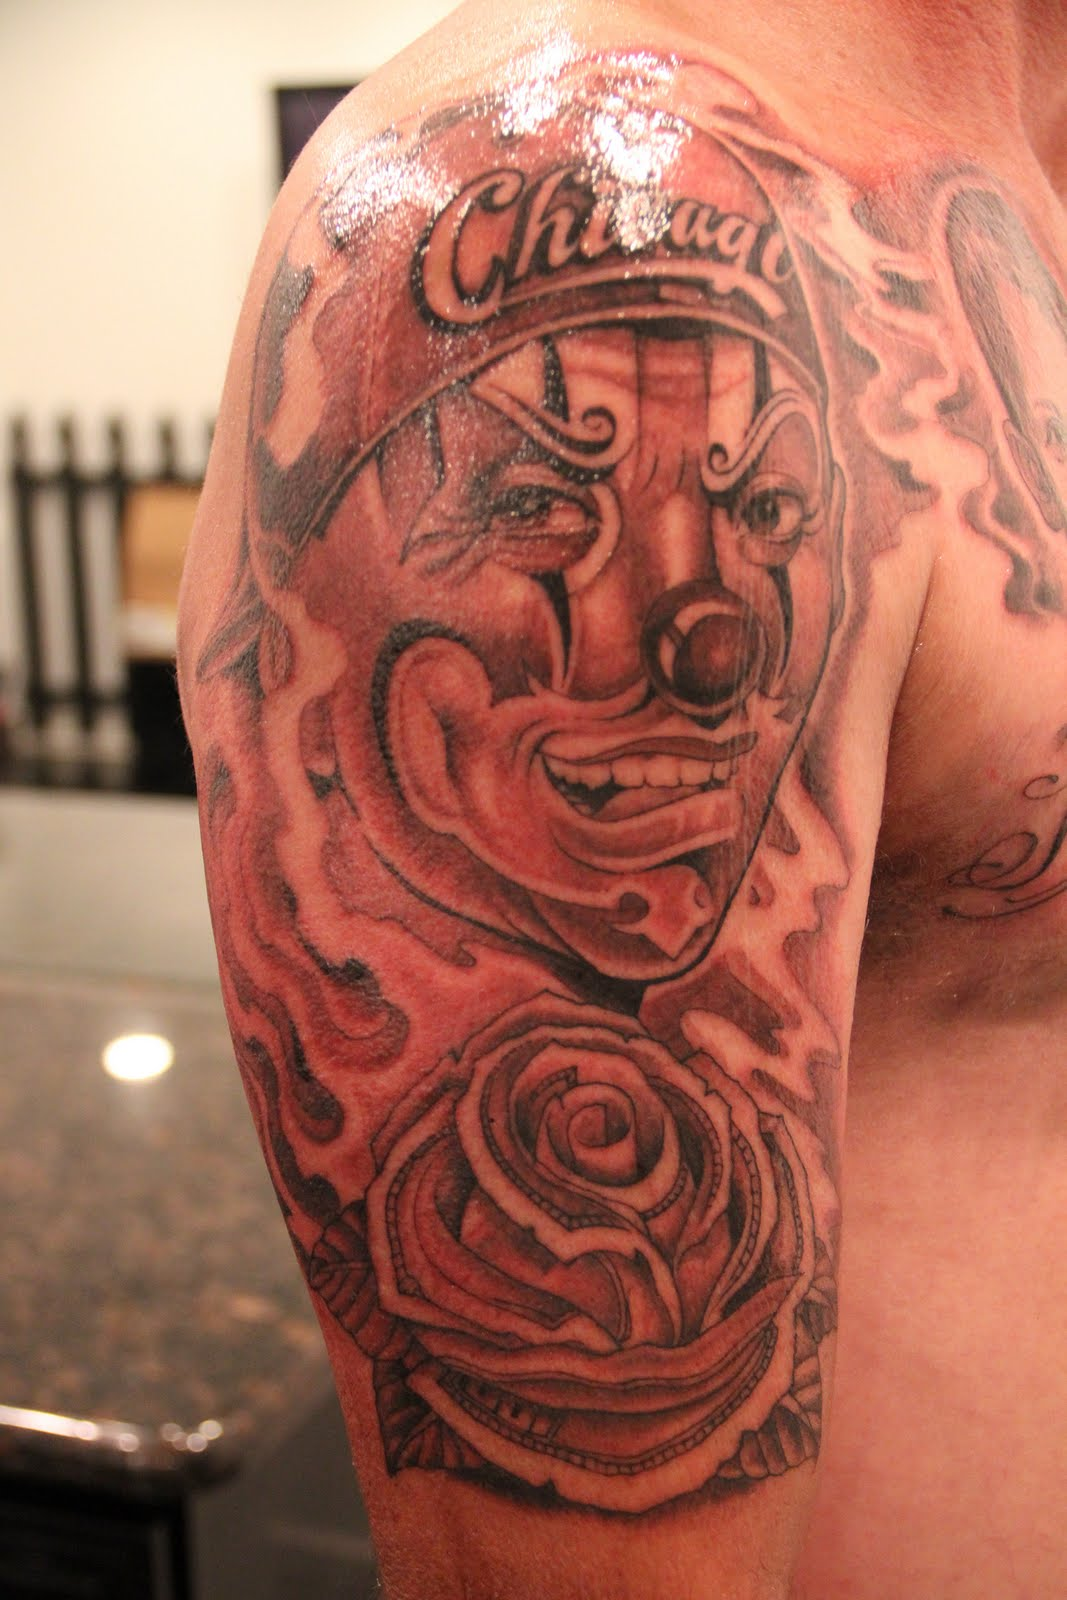 2011 in Art Tattoos